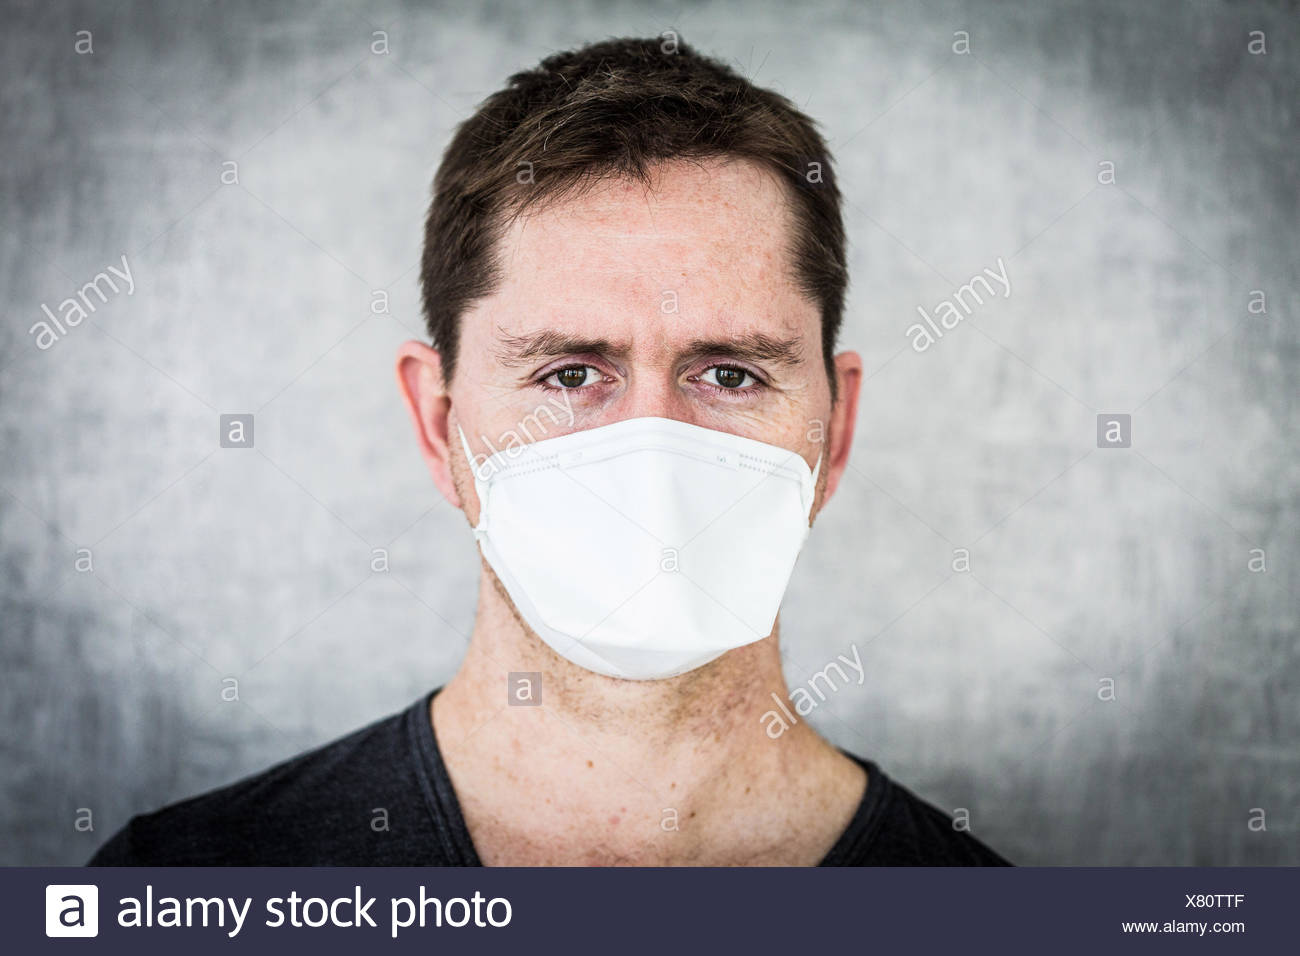 Man wearing a face mask. - Stock Image